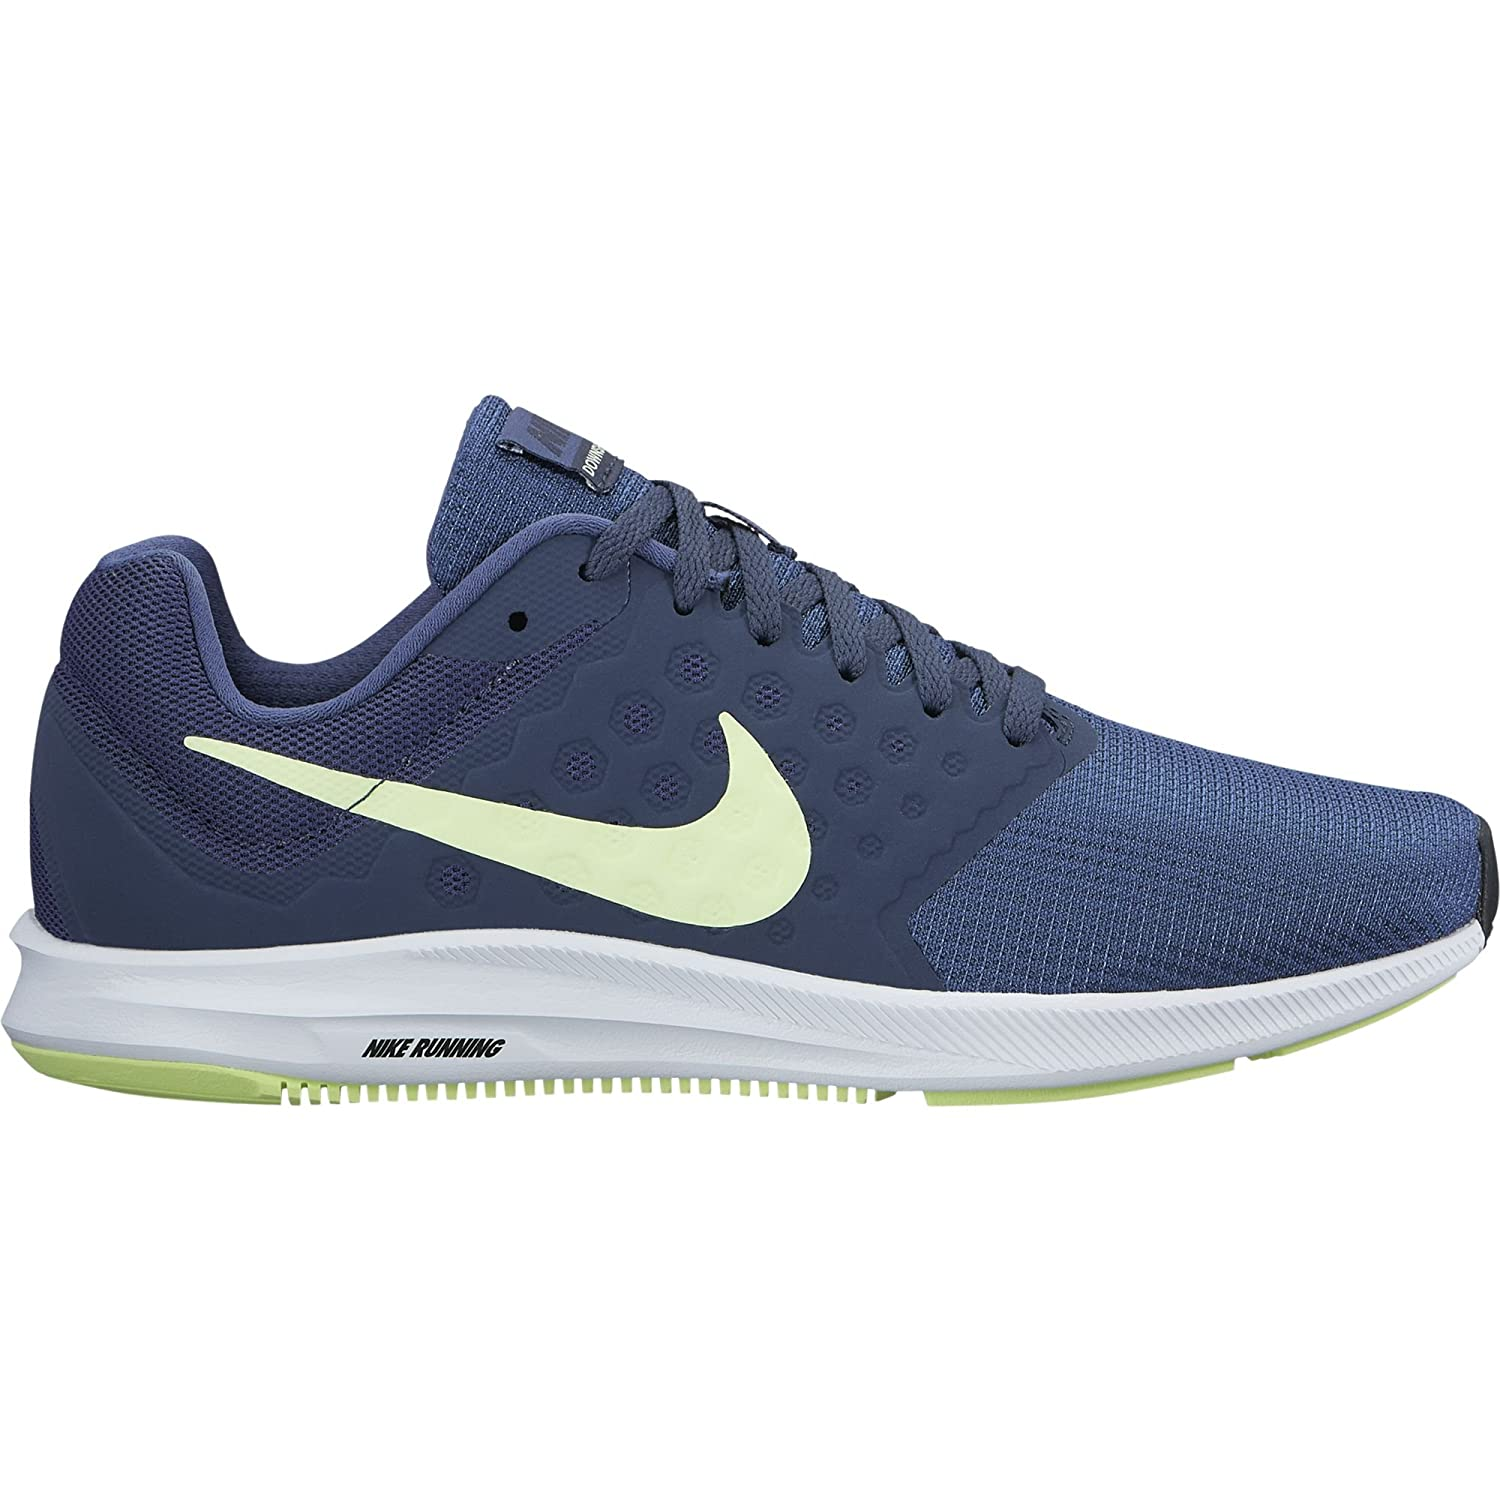 NIKE Women's Downshifter 7 B071HMS6JJ 11 B(M) US|Blue Recall/Barely Volt/Thunder Blue